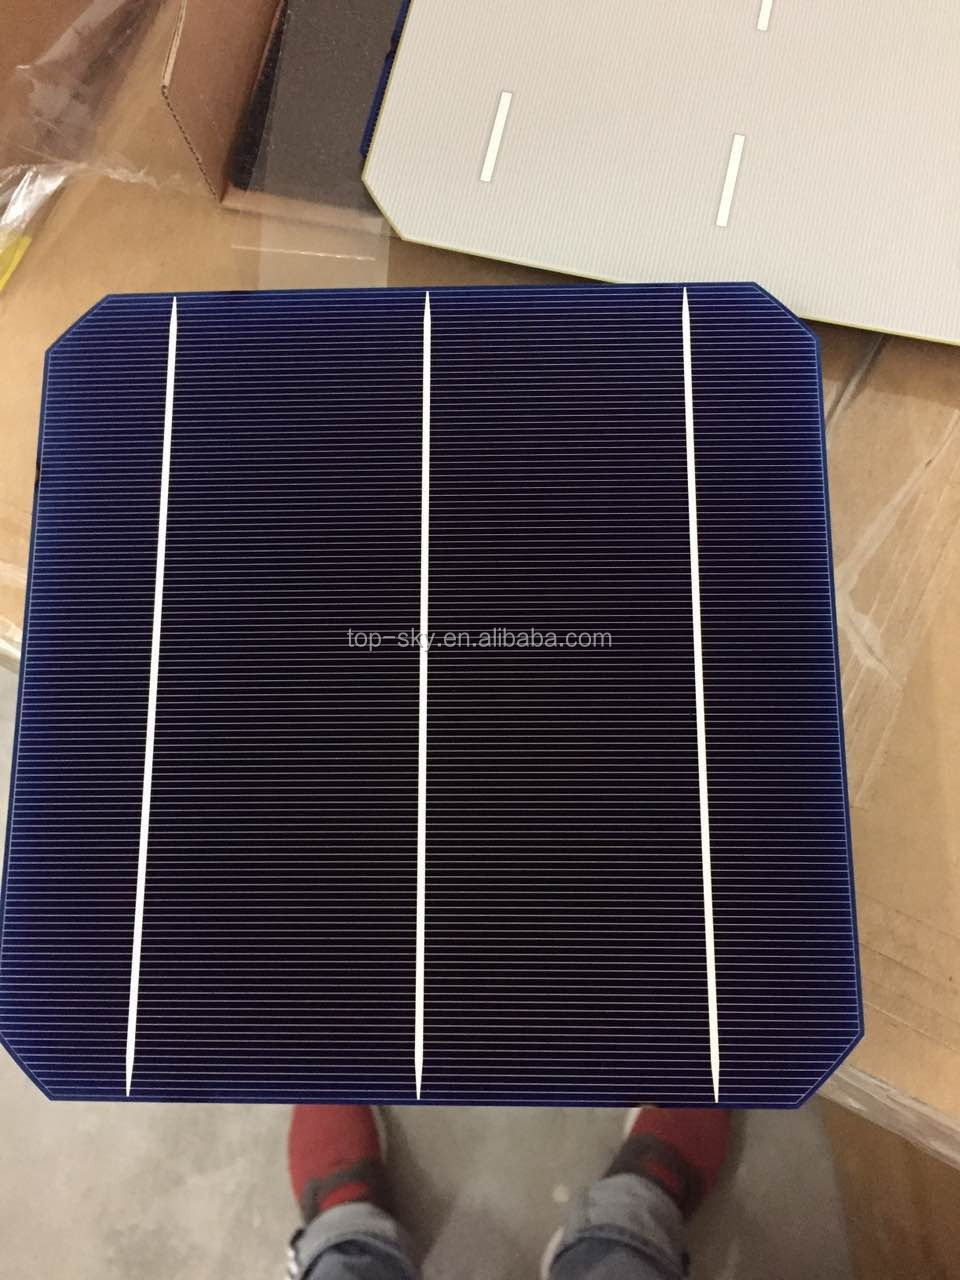 Taiwan solar cell Product List 4.5W solar cells Taiwan manufacturer AUO/NSP/Motech/Neo/E-Ton solar cells besat price